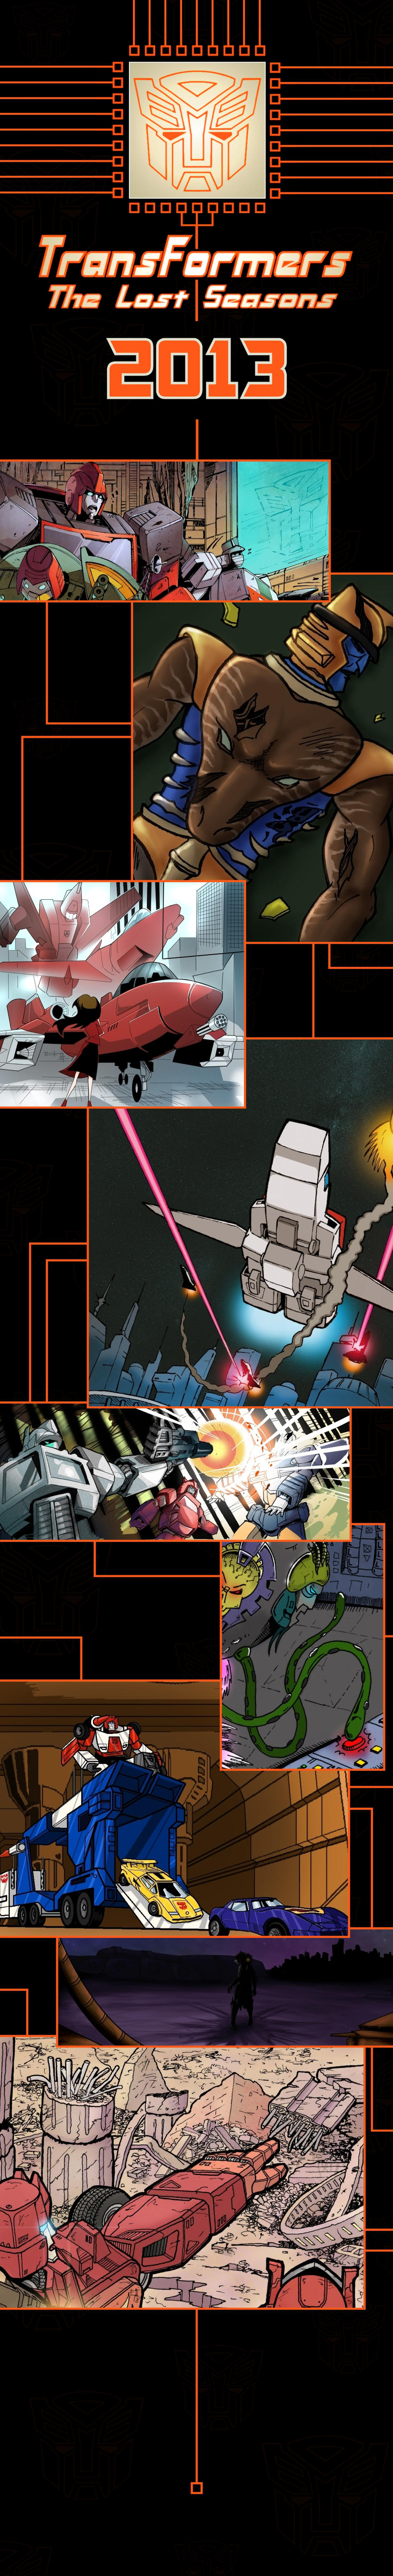 Coming to Transformers The Lost Seasons in 2013 by TF-The-Lost-Seasons